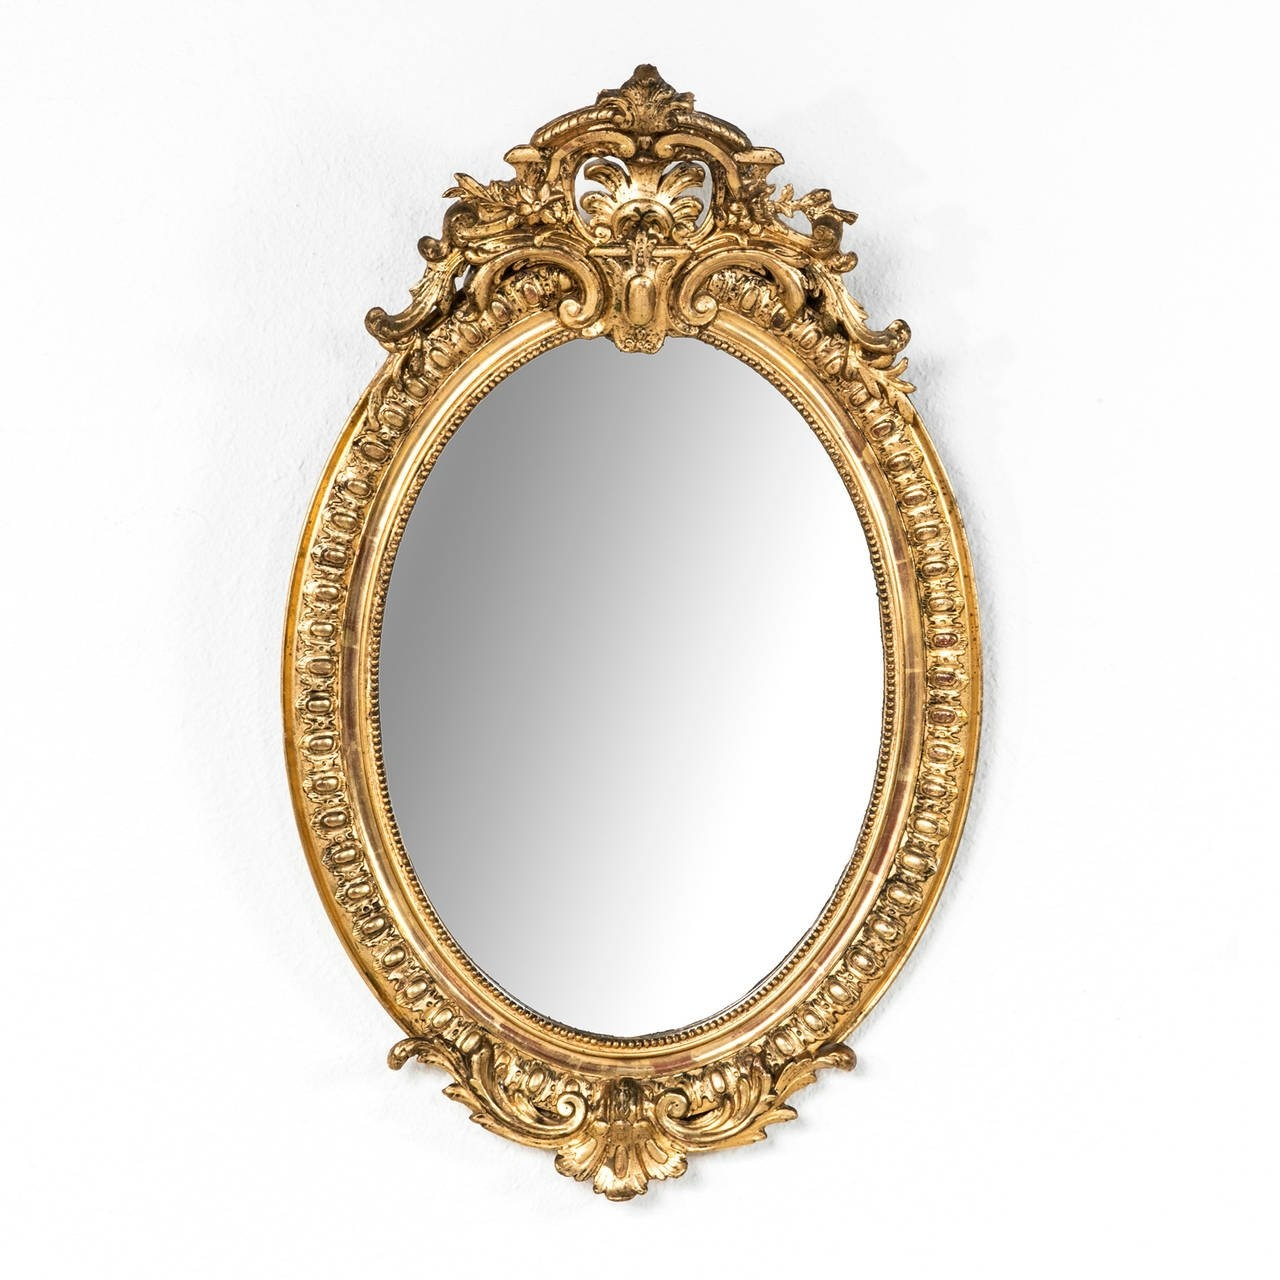 19th Century French Regency Style Giltwood Oval Mirror At 1stdibs With French Oval Mirror (View 11 of 15)